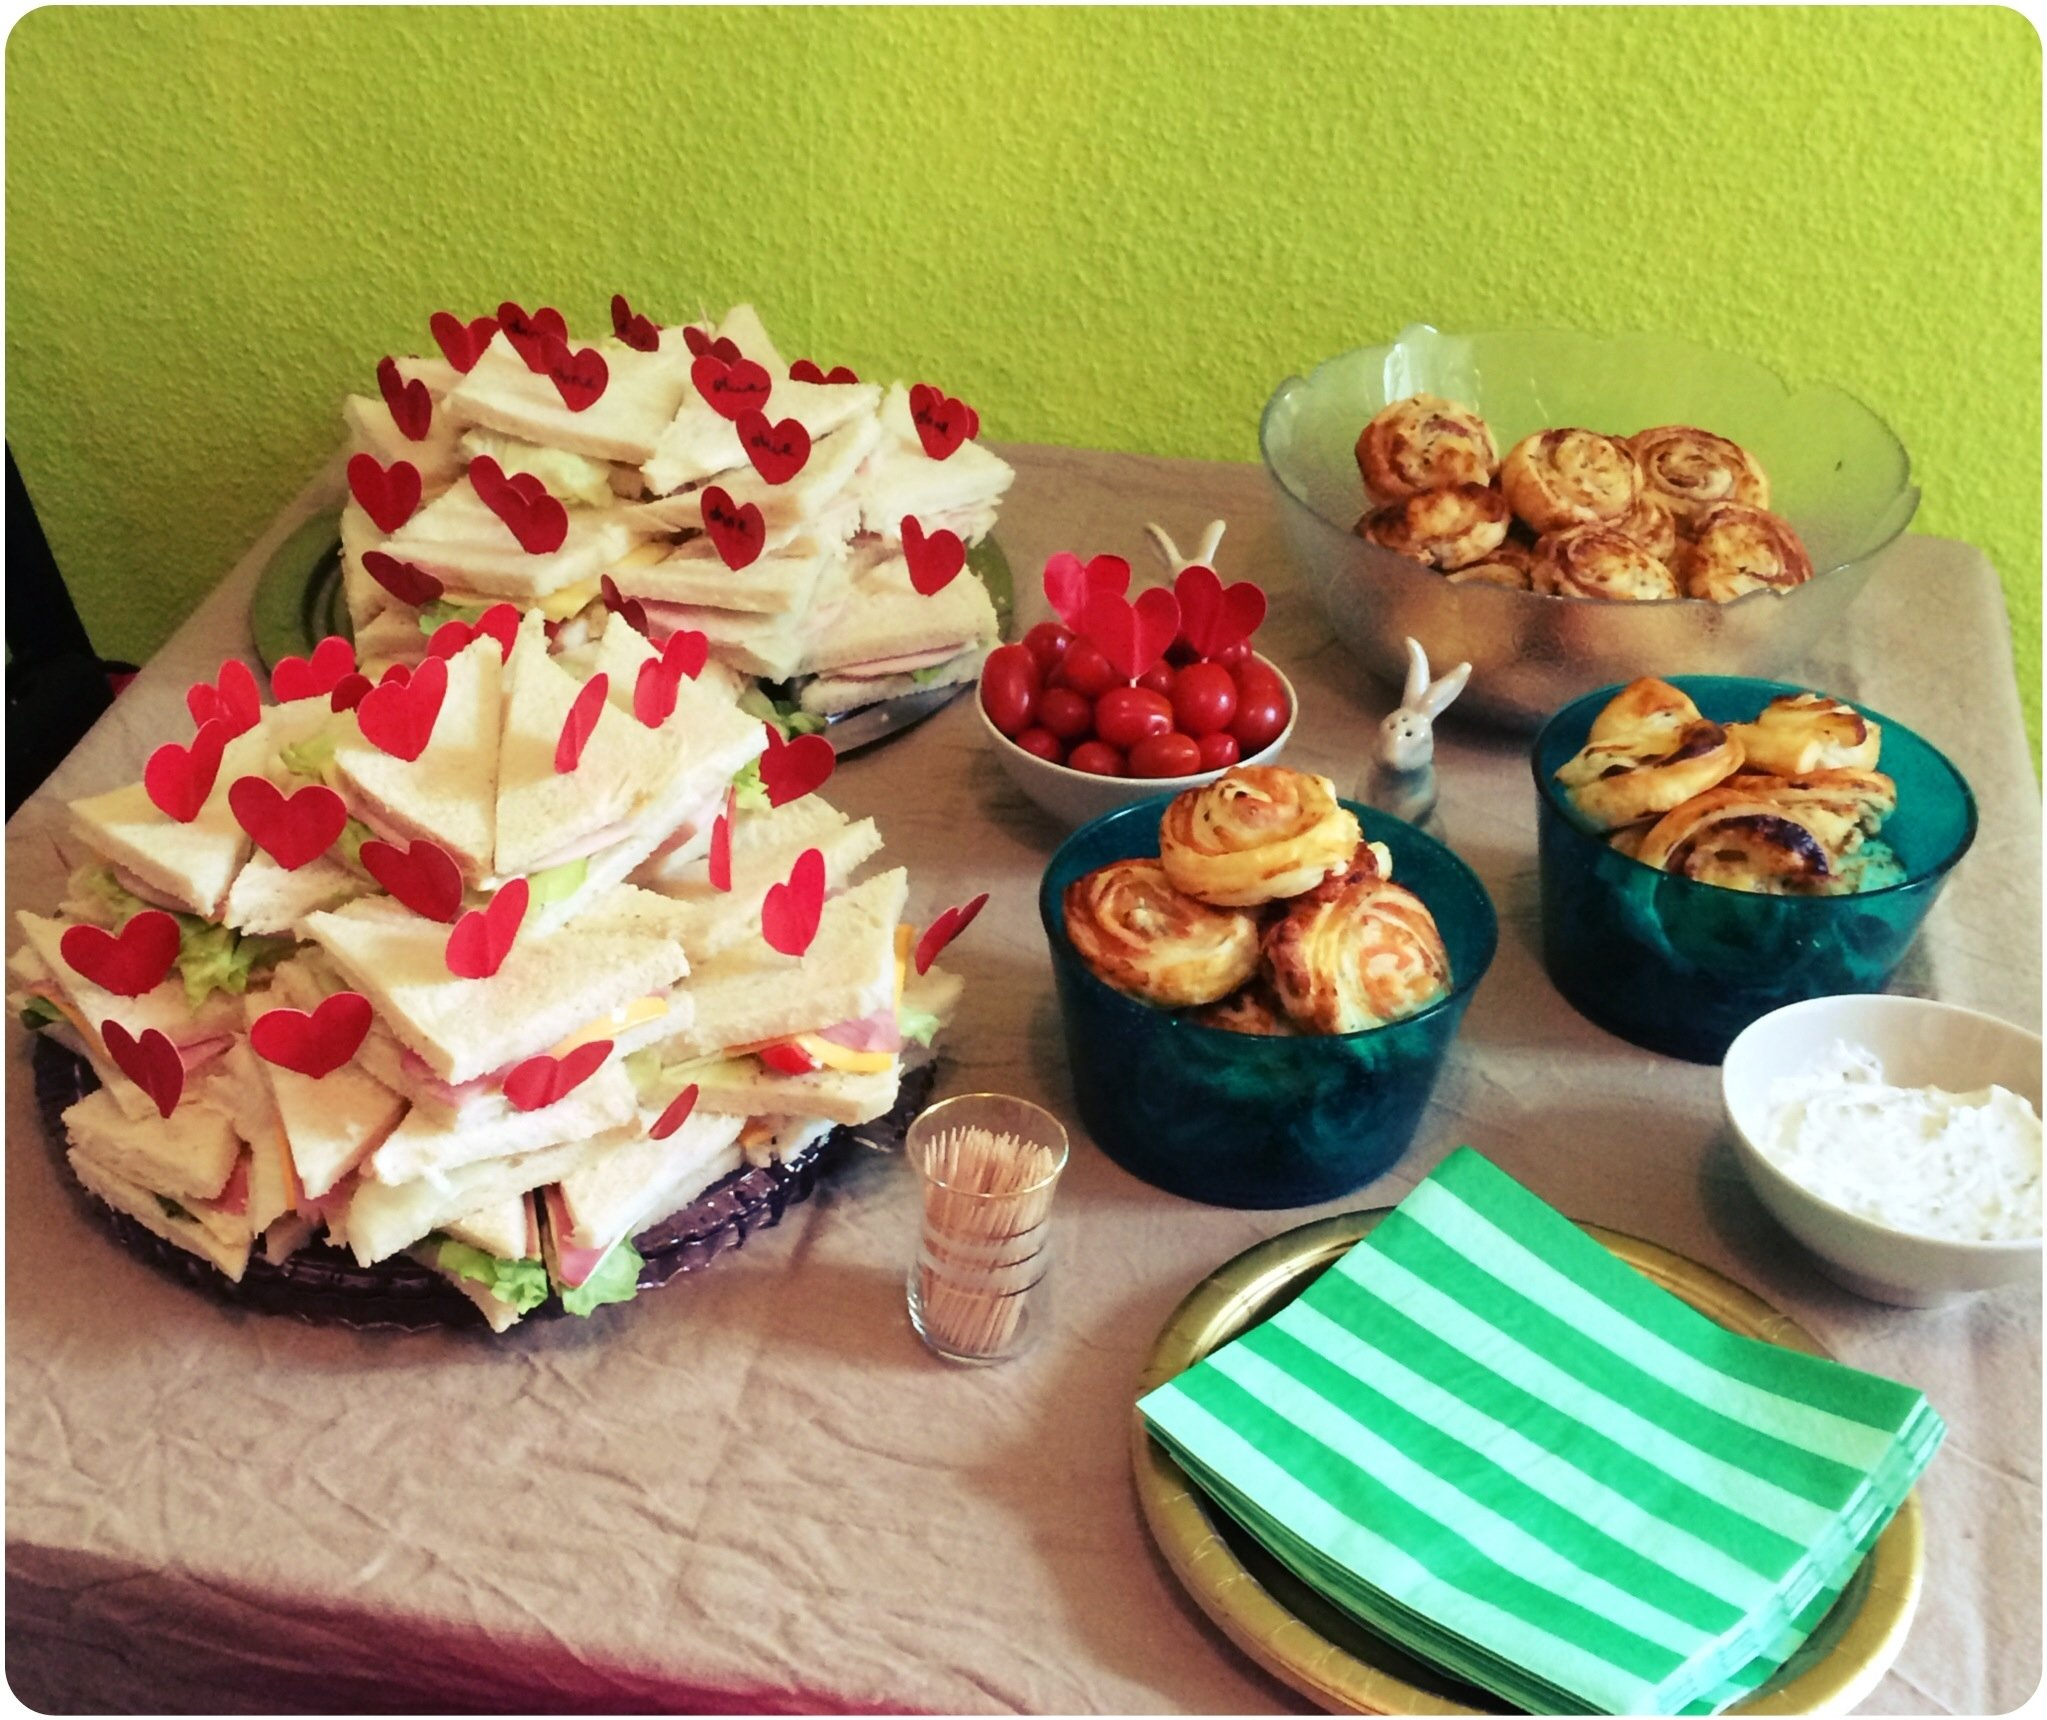 10 Elegant Alice In Wonderland Party Food Ideas halloween party here comes alice heartthing 2021